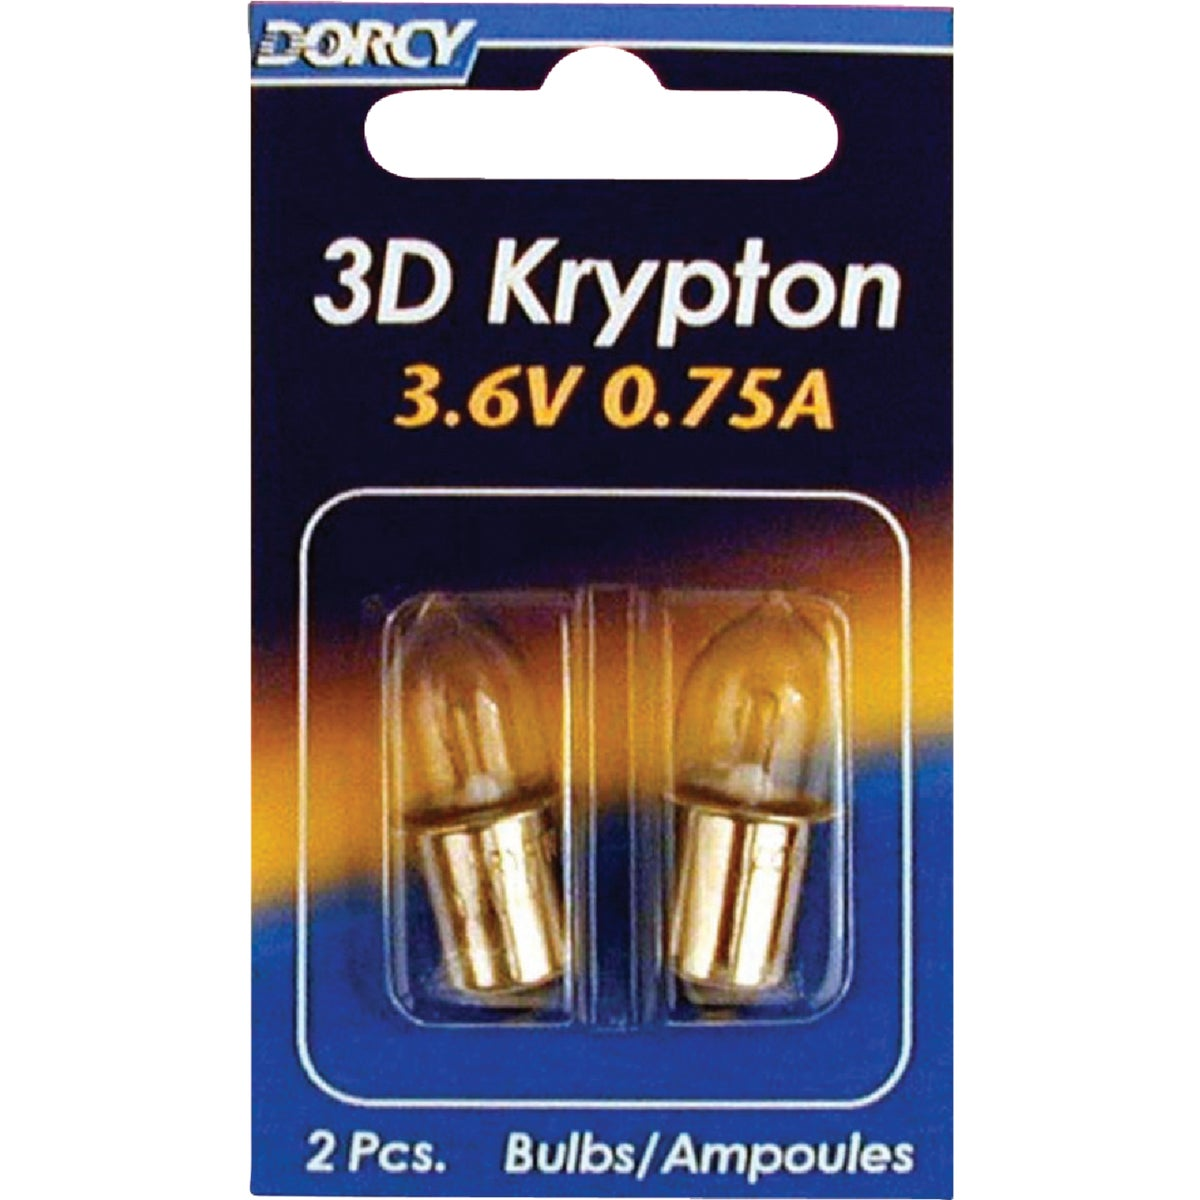 3D KRYPTON BULB - 41-1661 by Dorcy International